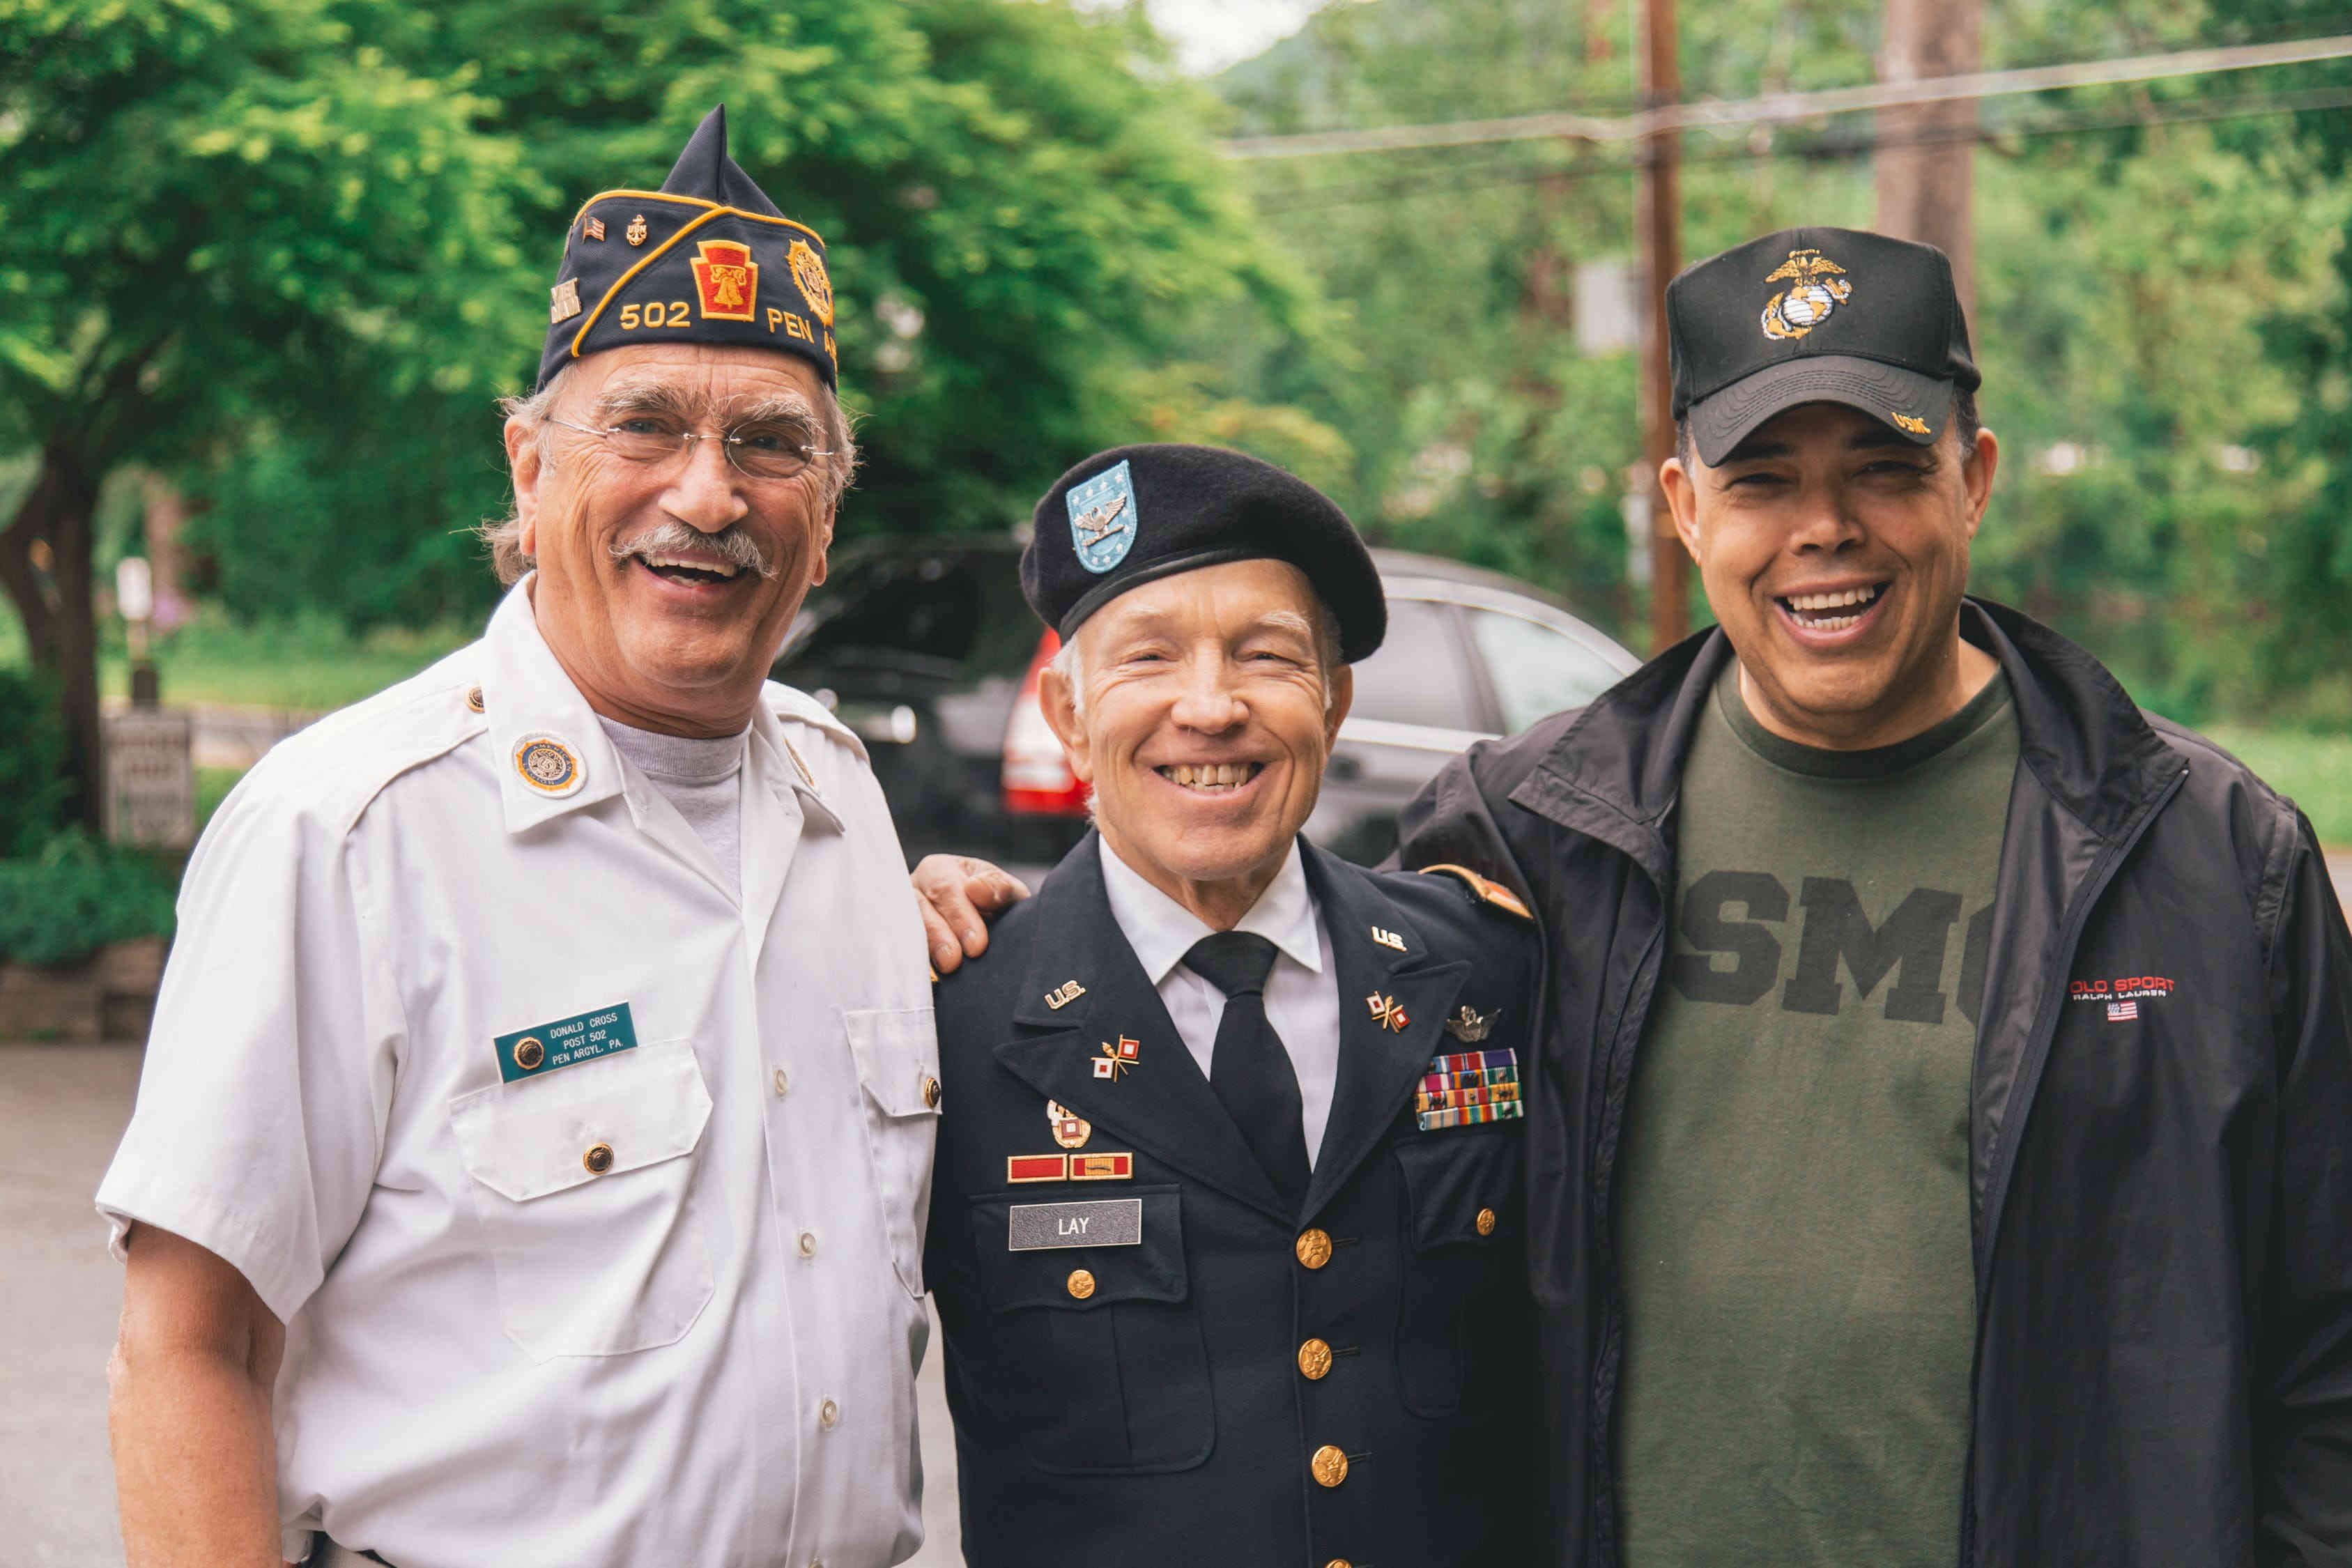 An image of three veterans standing together and smiling.